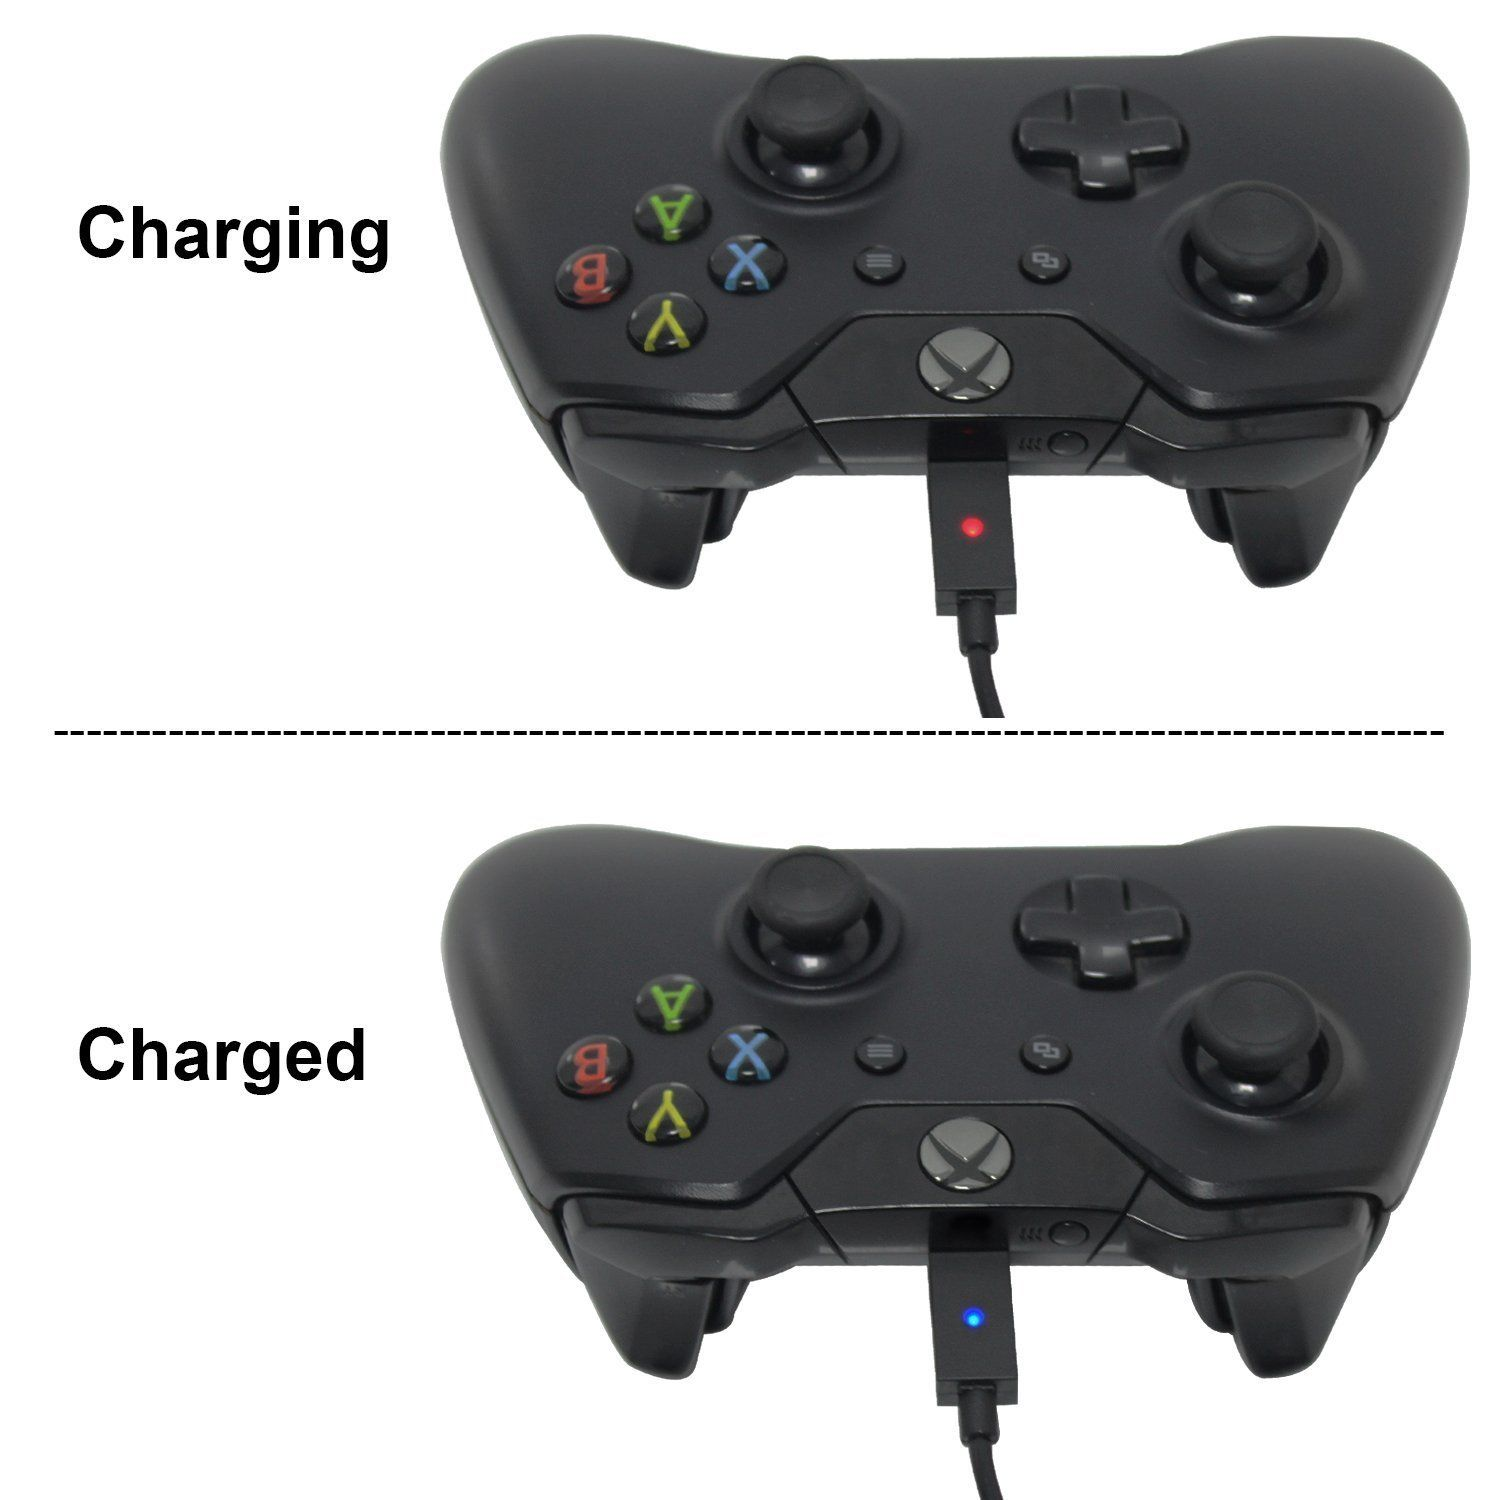 Xbox One Battery Pack 2pcs X 1200 Mah Xbox One Rechargeable Battery And 5ft Micro Usb Charging Cable With Led Indica Video Game Shop Xbox One S Video Games Ps3